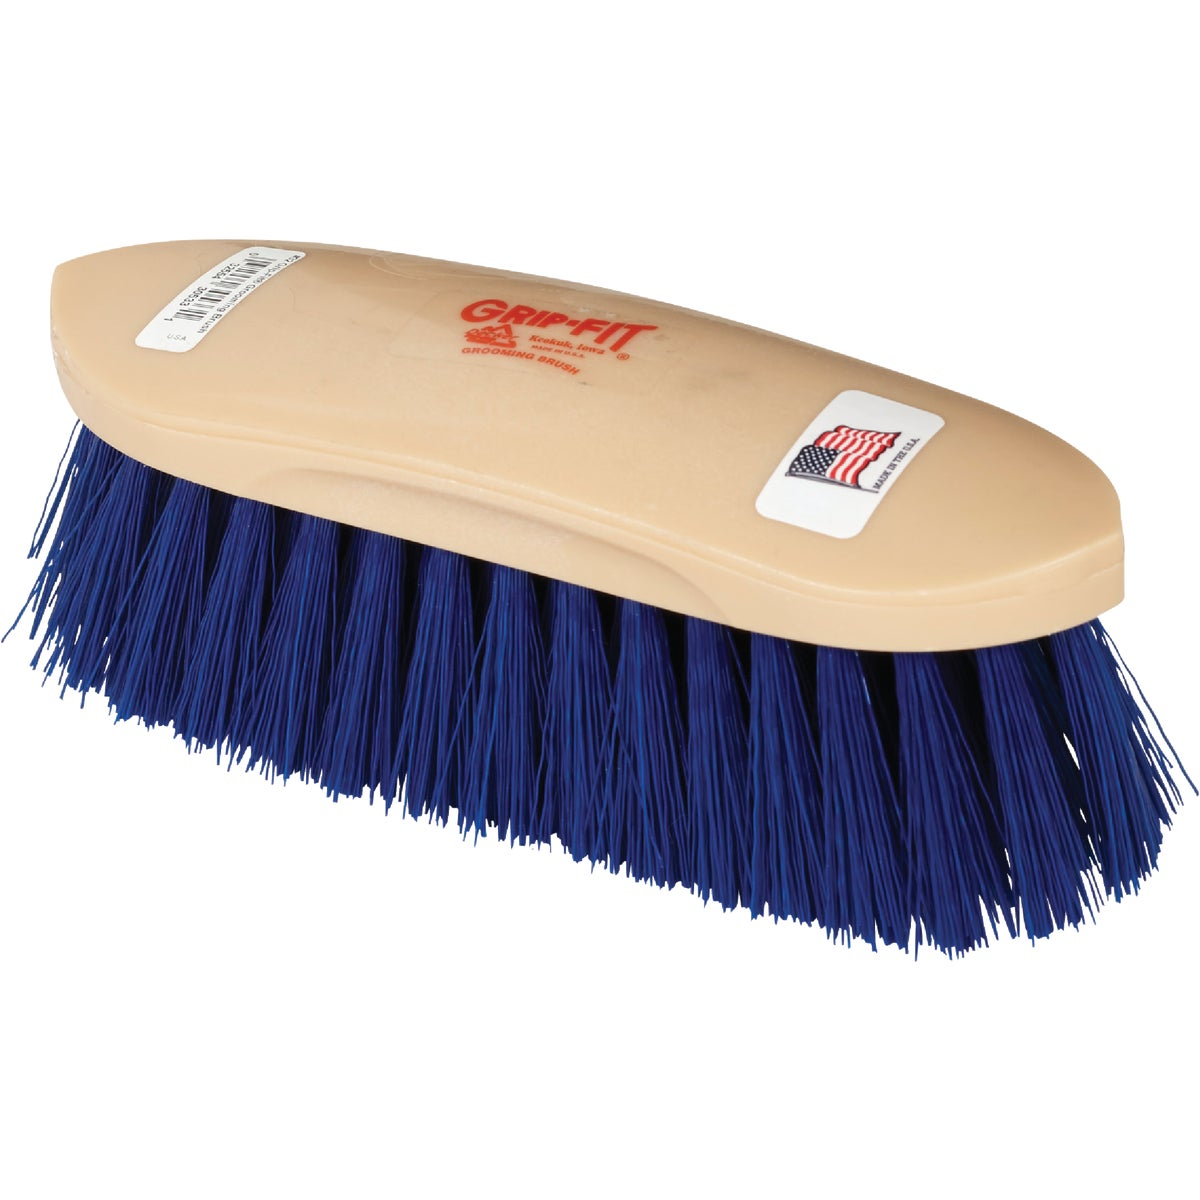 SYNTHETIC GROOMING BRUSH - 32 by Decker Manufacturing